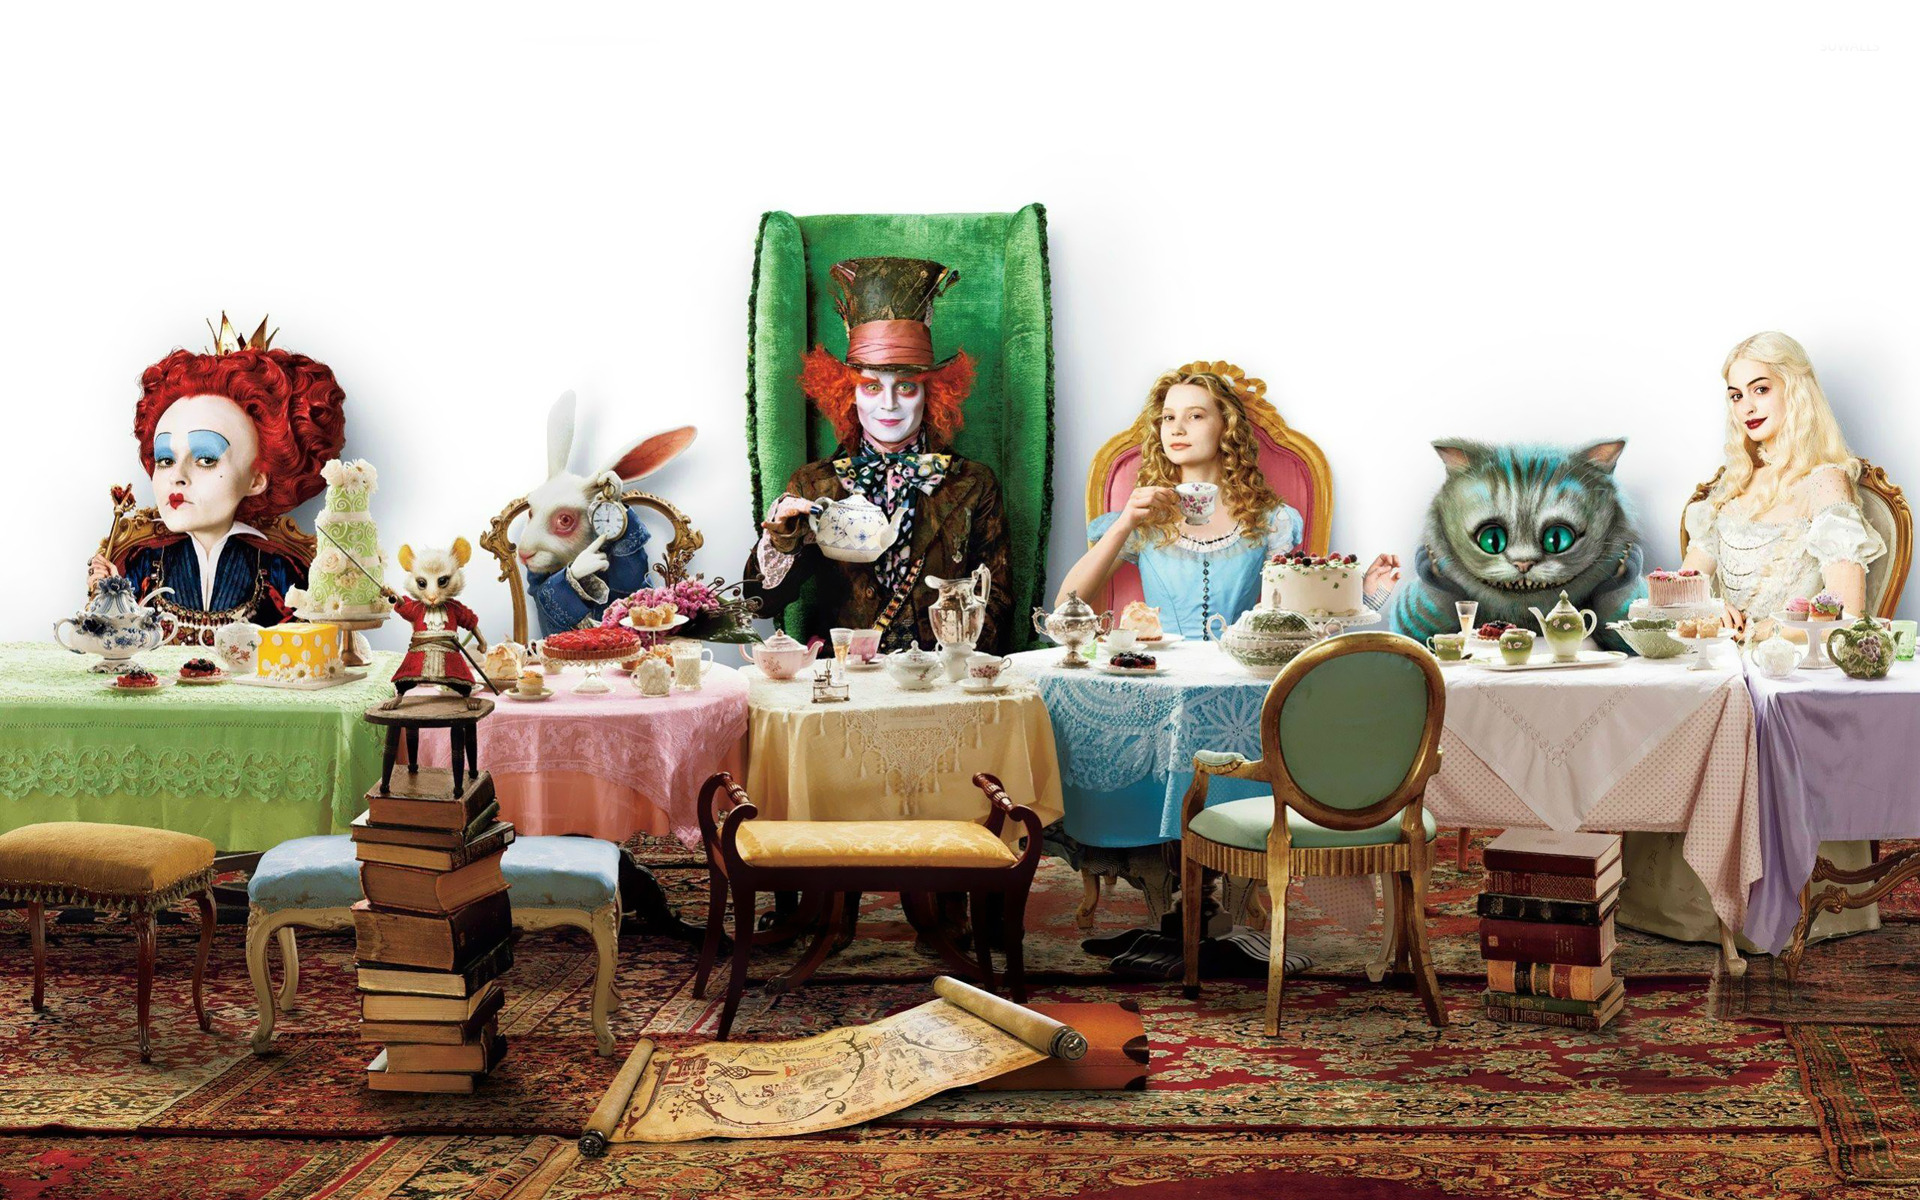 alice in wonderland wallpaper - movie wallpapers - #15134